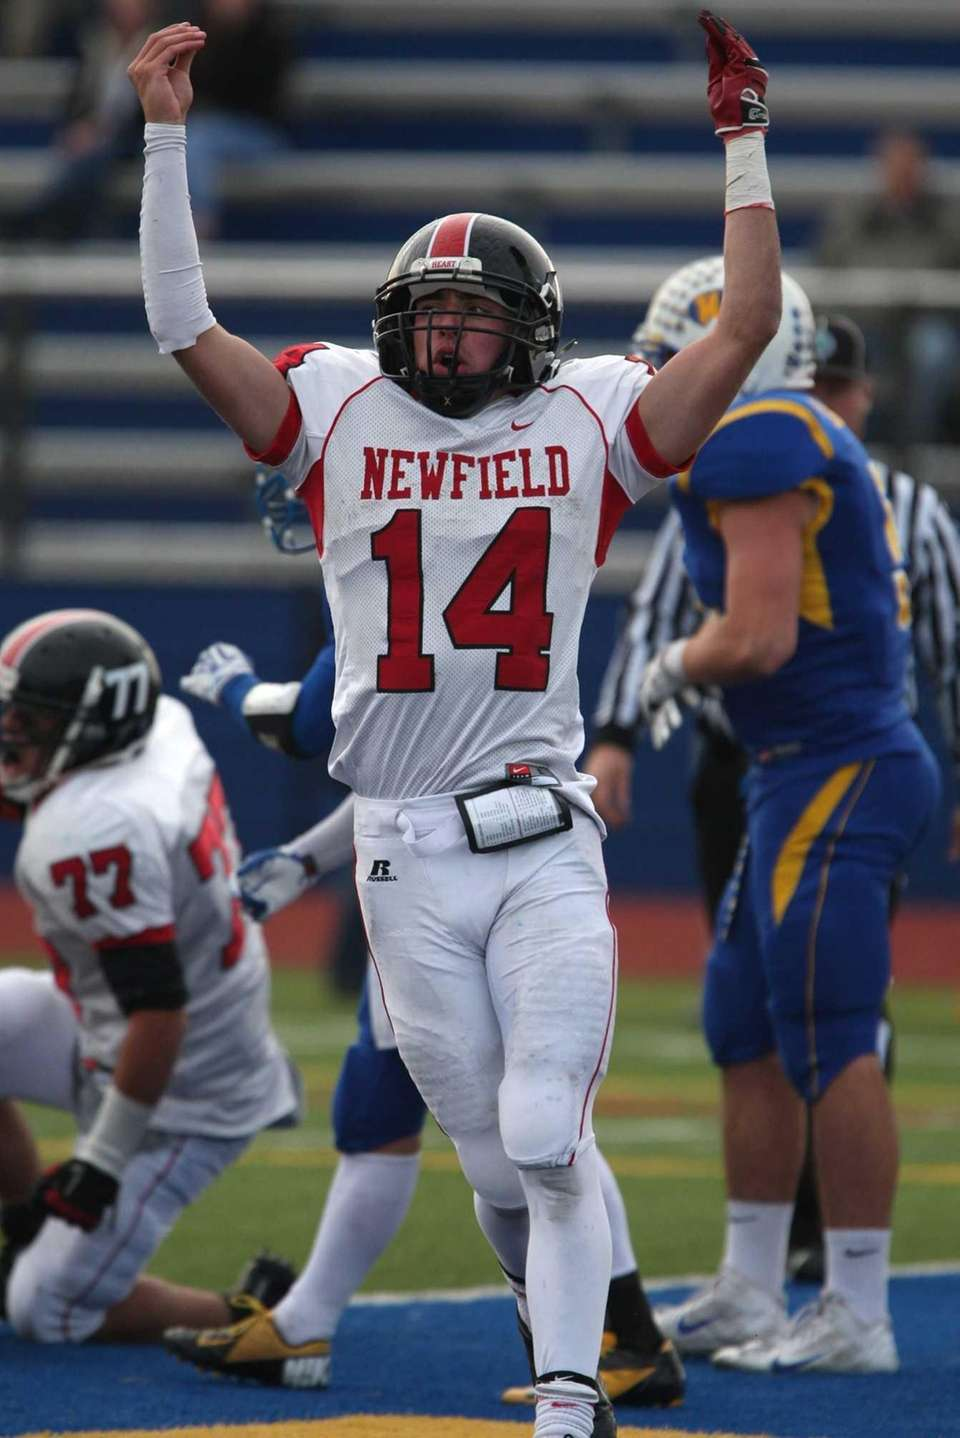 Newfield's Dylan Harned raises his arms after fighting